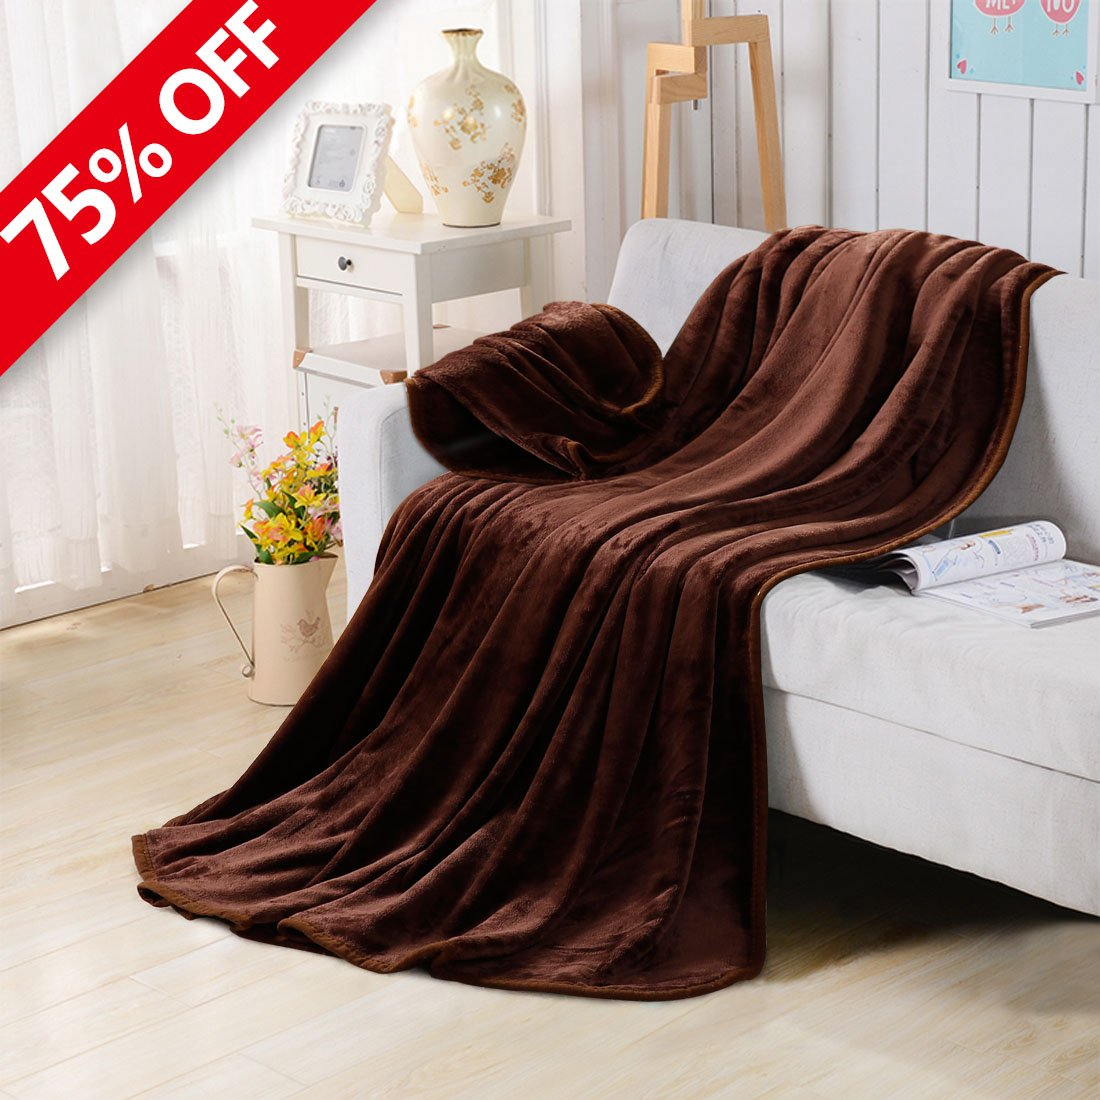 Fleece Blankets for The Bed Extra Soft Brush Fabric Super Warm Sofa Blanket (King-90X108inch,Chocolate)